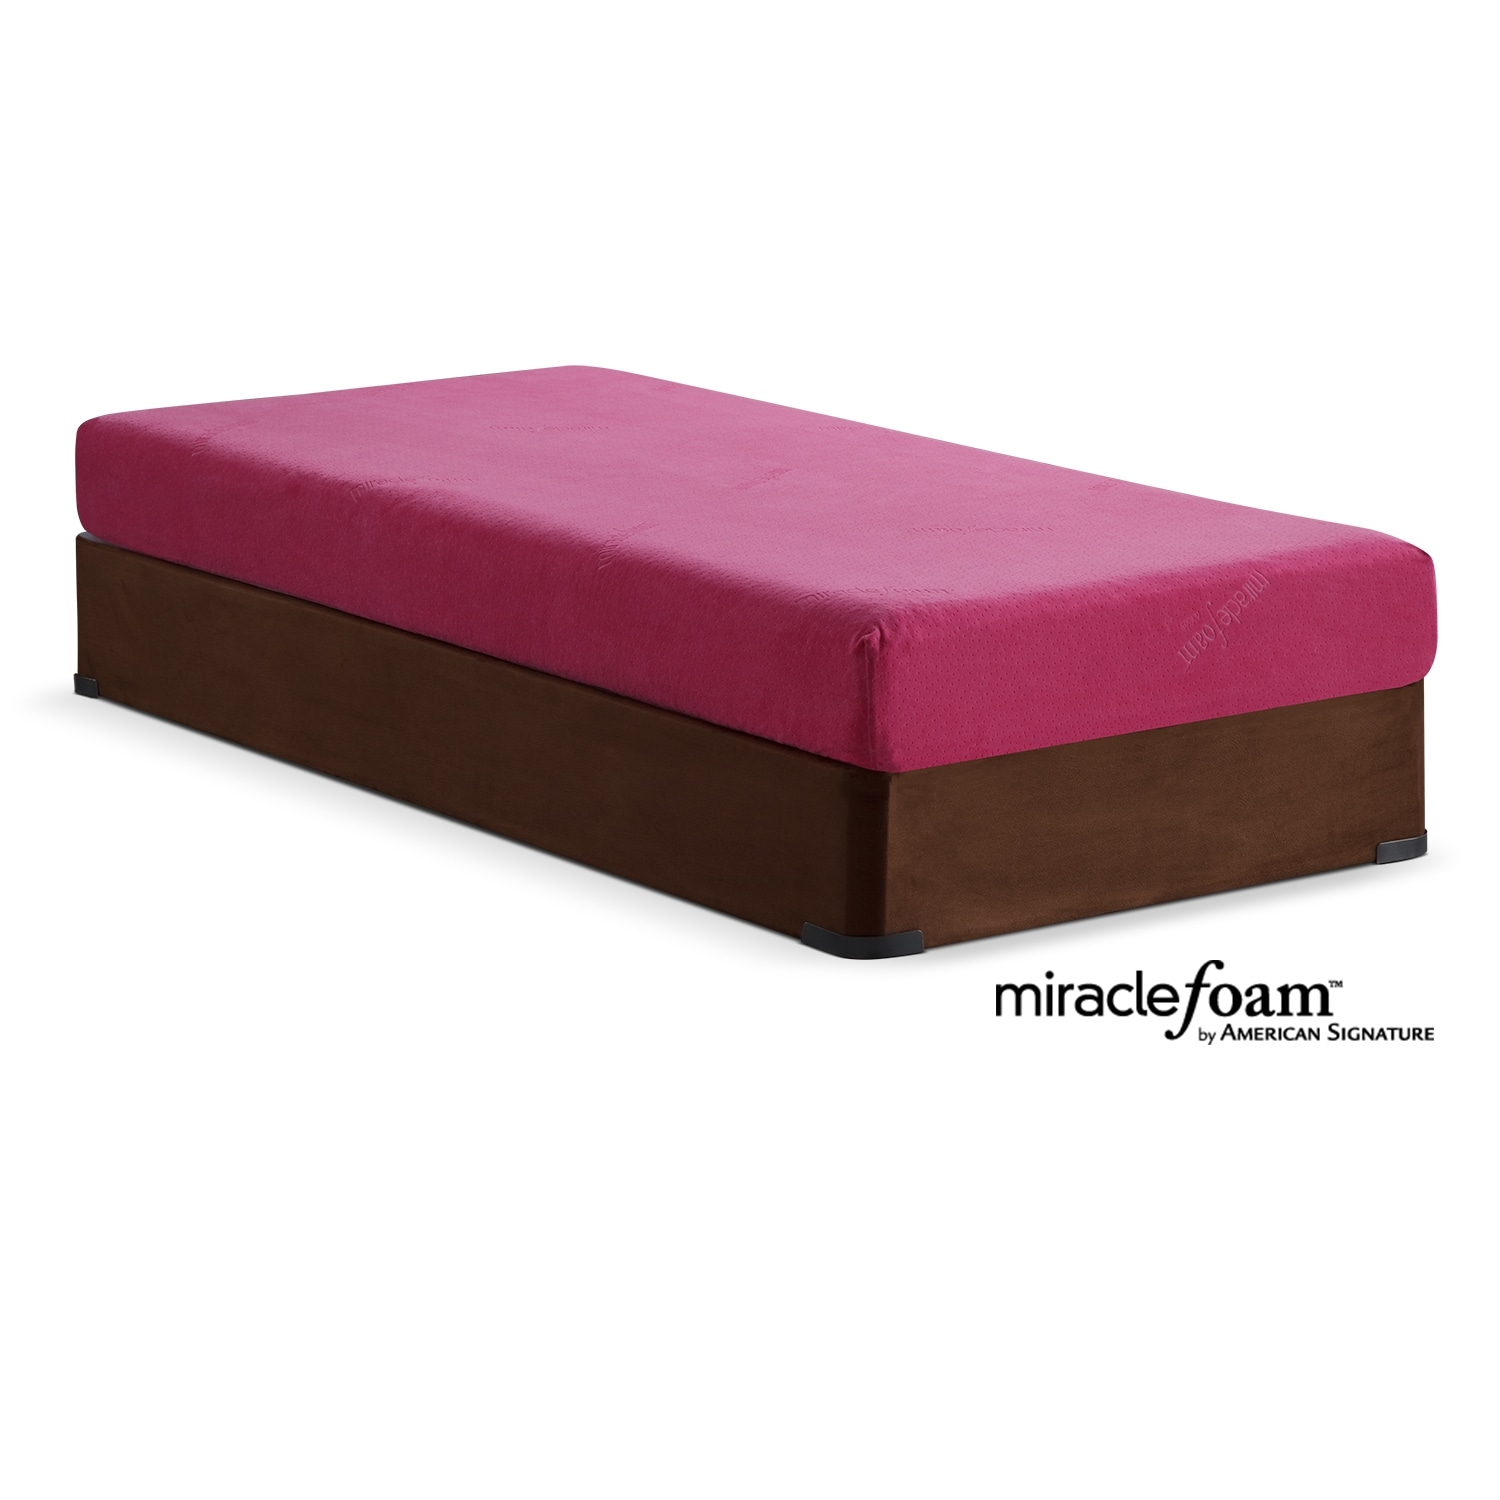 Mattresses and Bedding - Renew Pink Full Mattress/Foundation Set